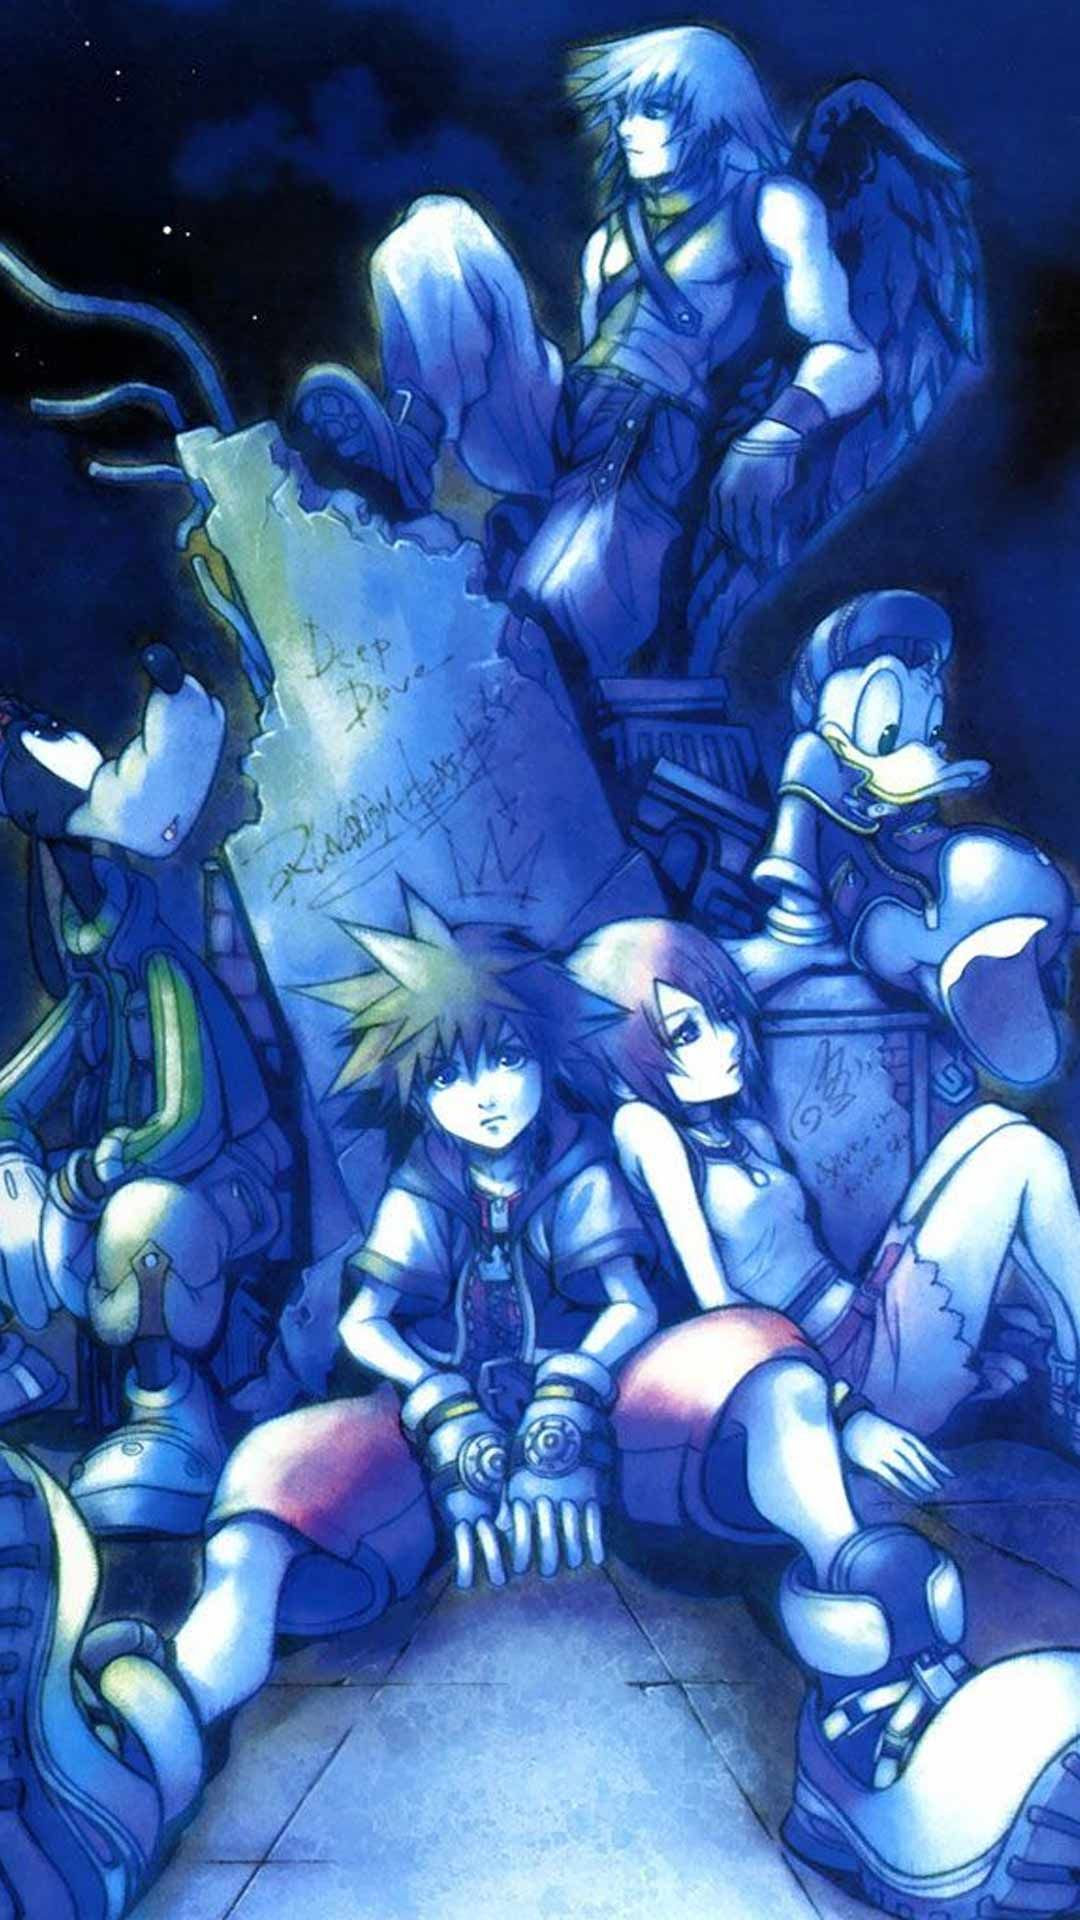 20 Kingdom Hearts 3 Phone Wallpaper Backgrounds For Free Download